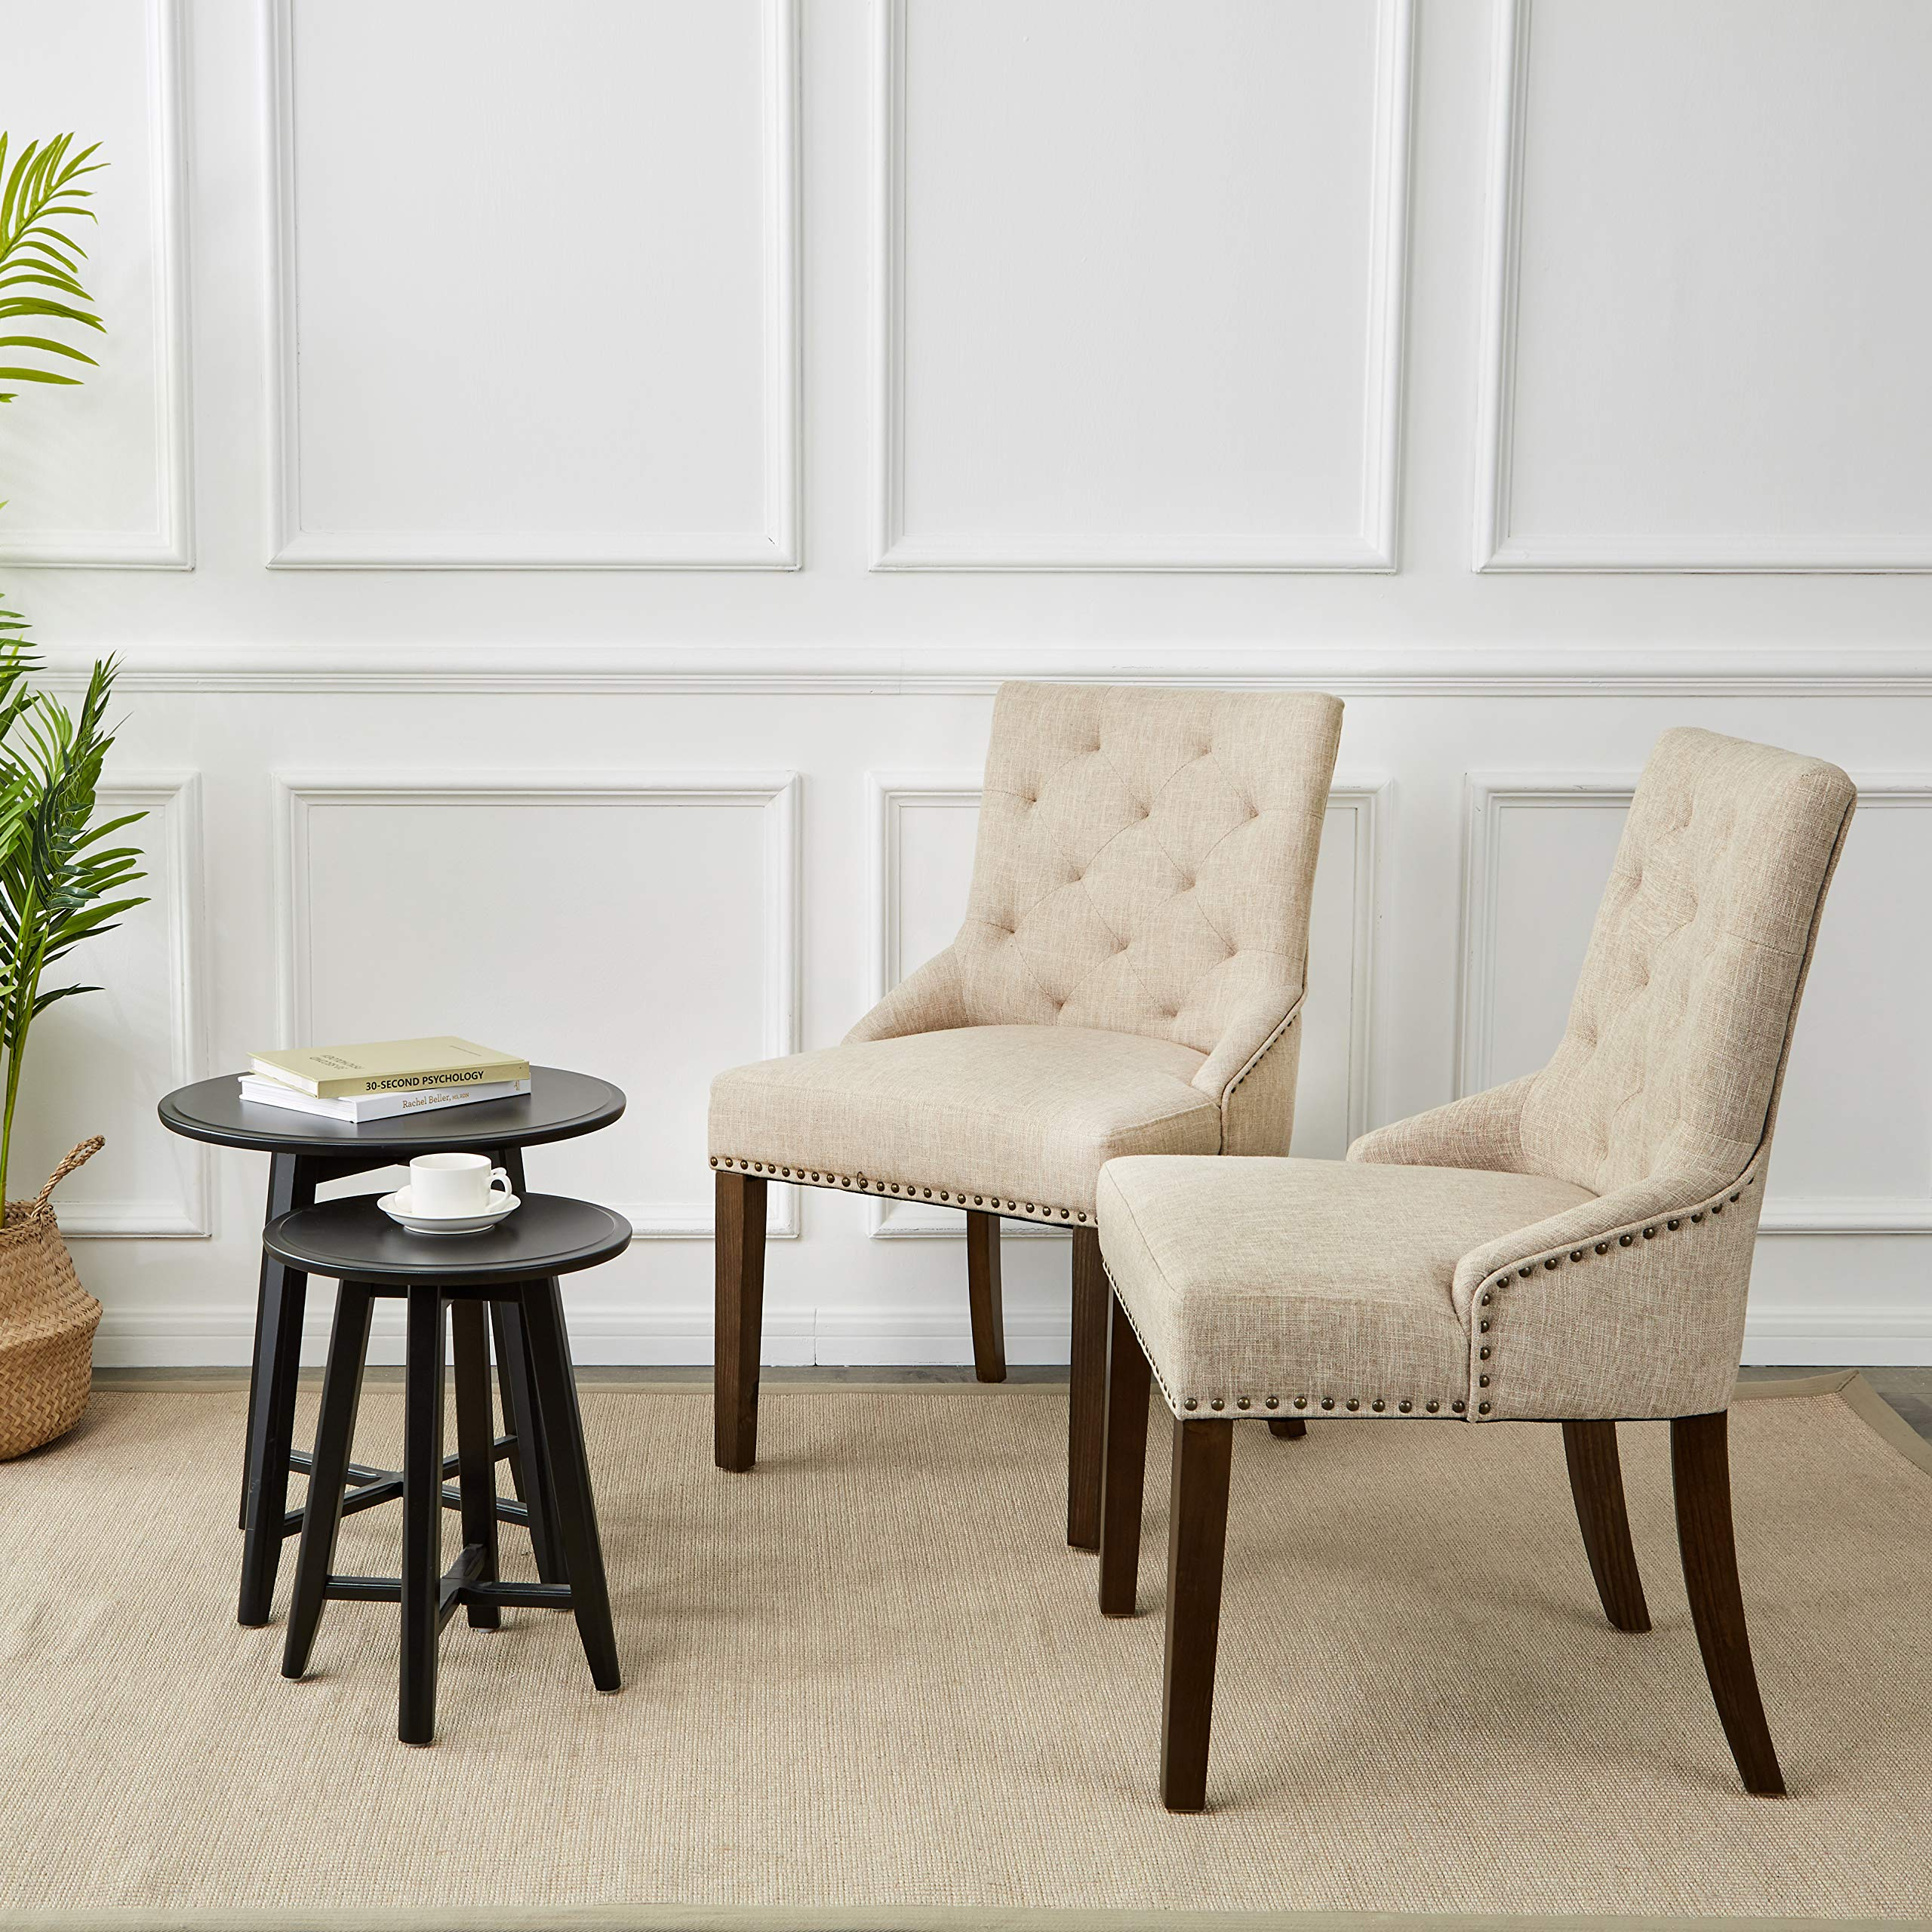 Red Hook Martil Upholstered Dining Chair with Nailhead Trim, Biscuit Beige, Set of 2 by Red Hook (Image #2)